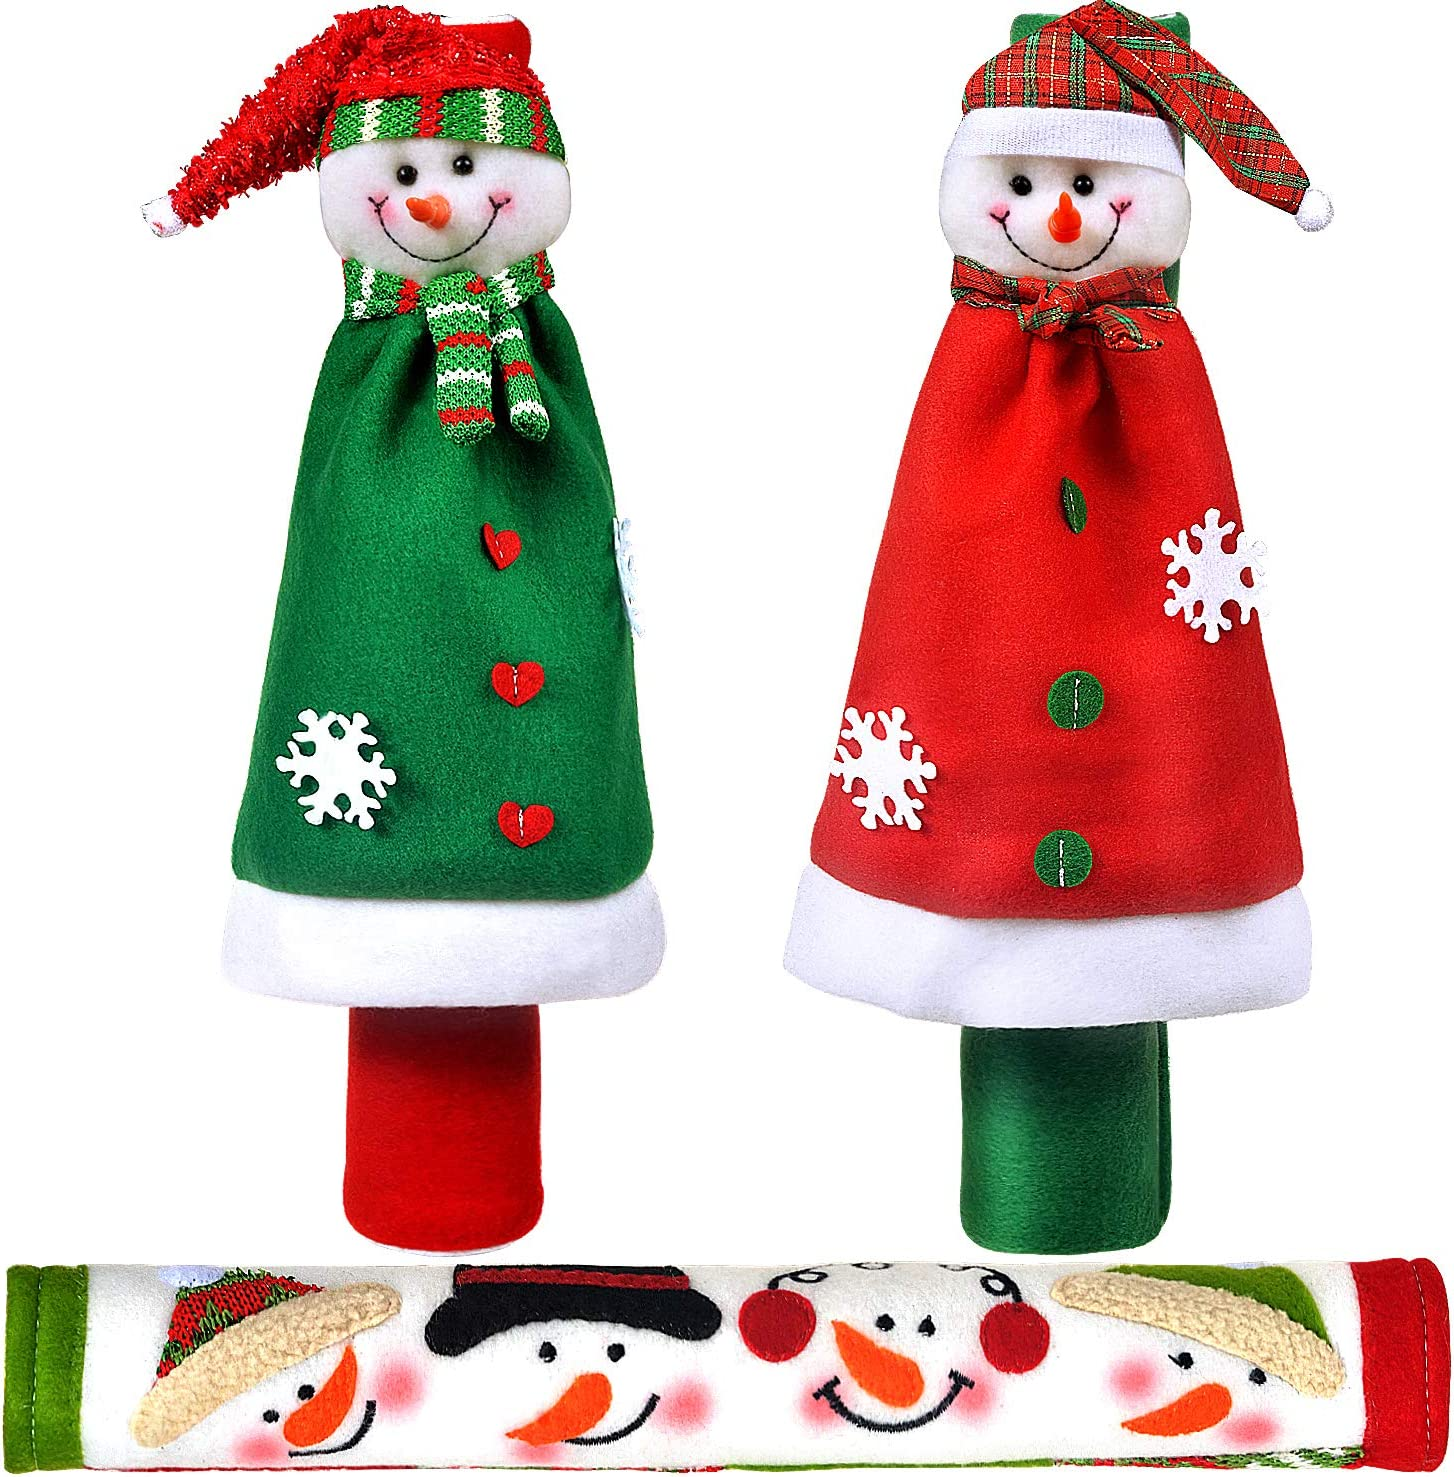 Vezfinel Kitchen Appliance Snowman Handle Covers, Christmas Home Decorations Set for Holiday Idea Gifts,Refrigerator Microwave Oven or Dishwasher Xmas Decor (3 Pack)